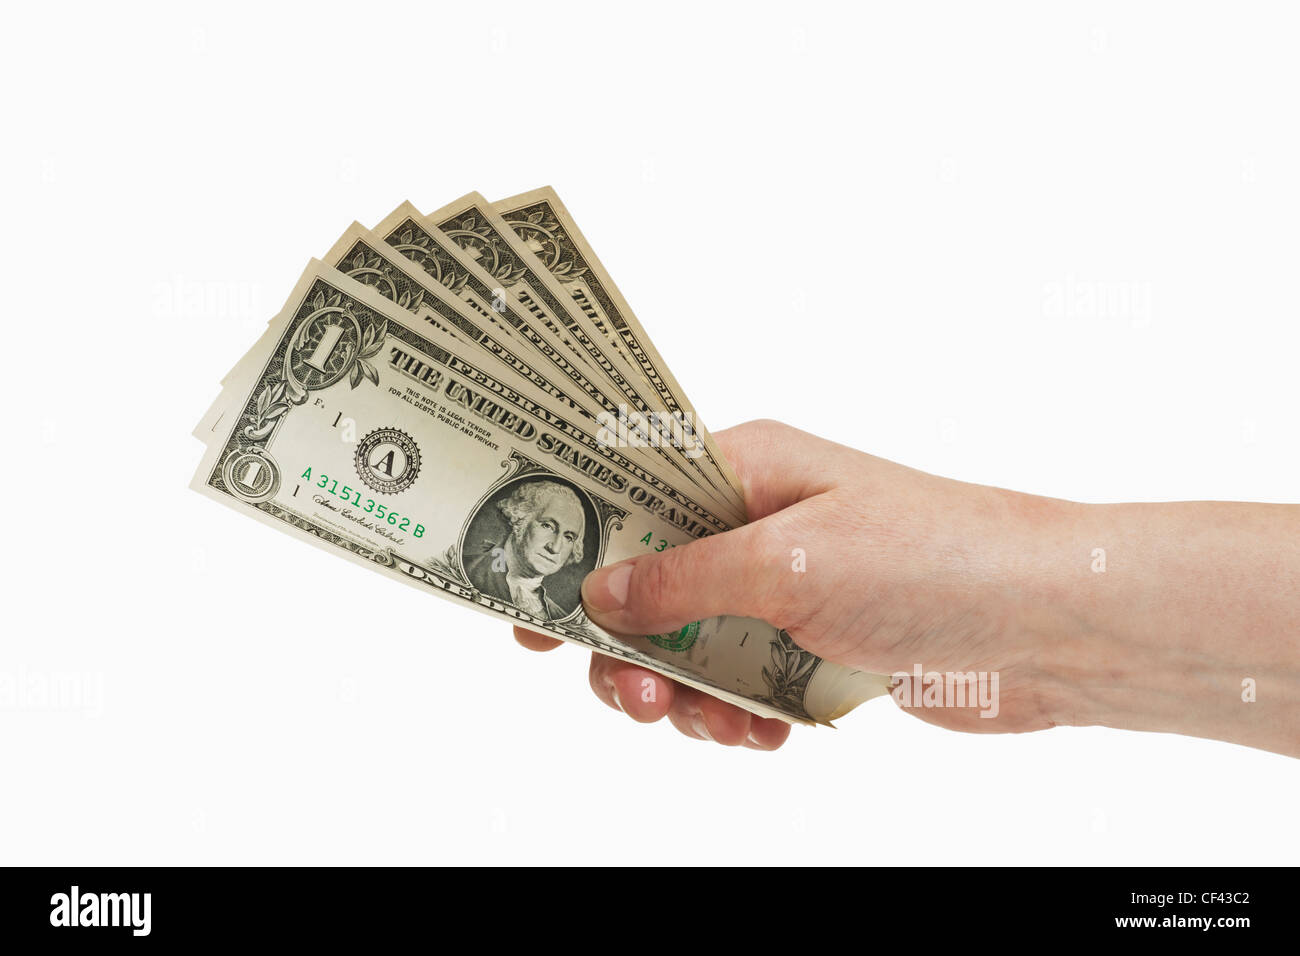 Five 1 U.S. Dollar bills are held in the hand, white background - Stock Image